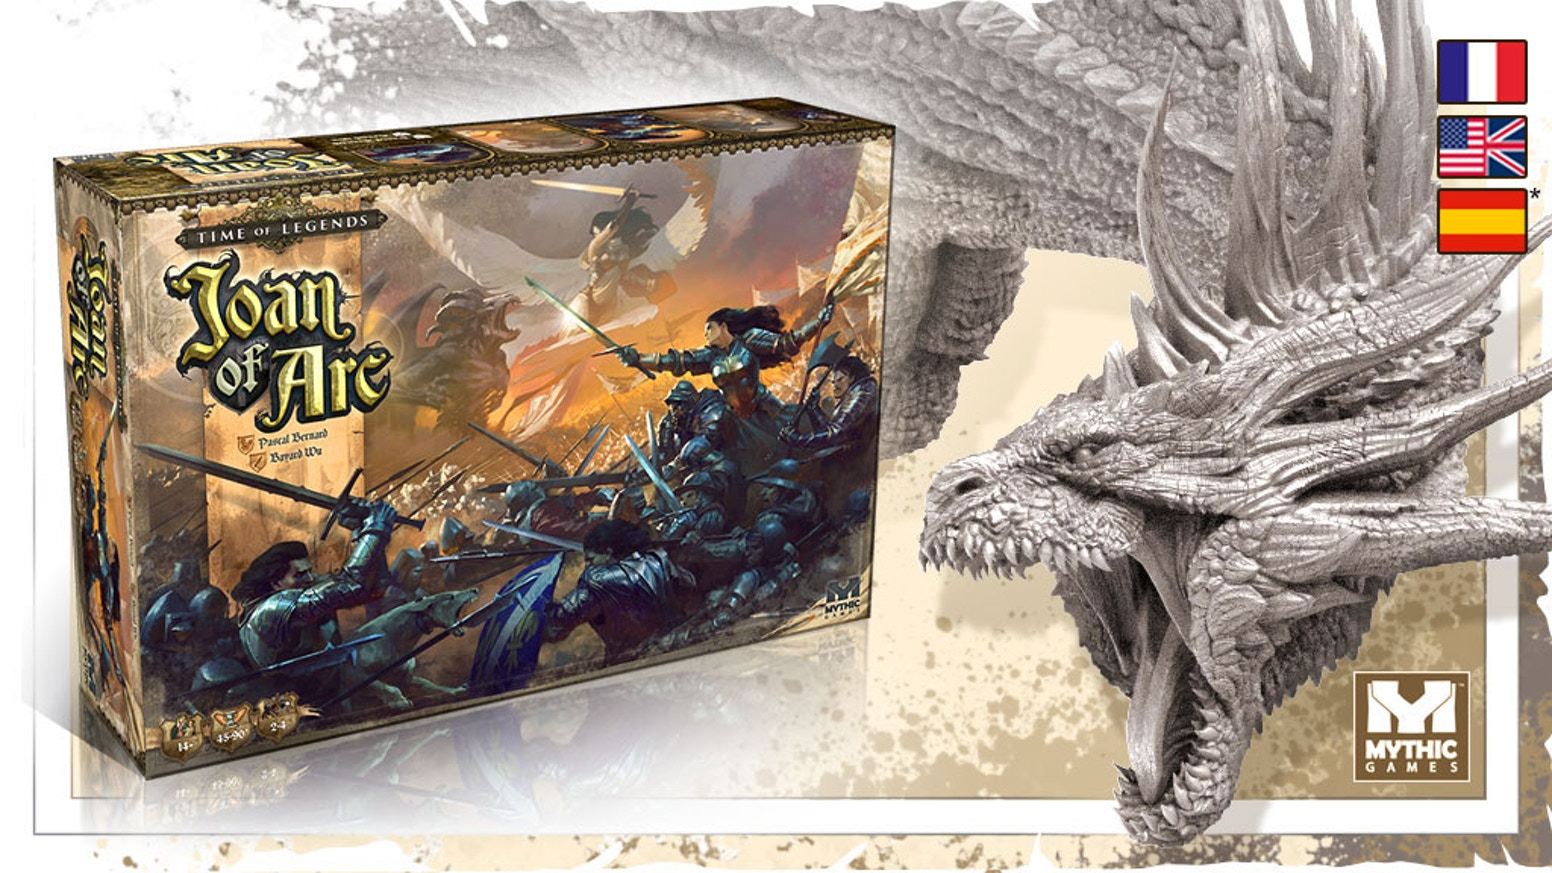 The legendary game is back! Relive the golden age of chivalry in this 2-4 player scenario-based board game of medieval battle and myth.